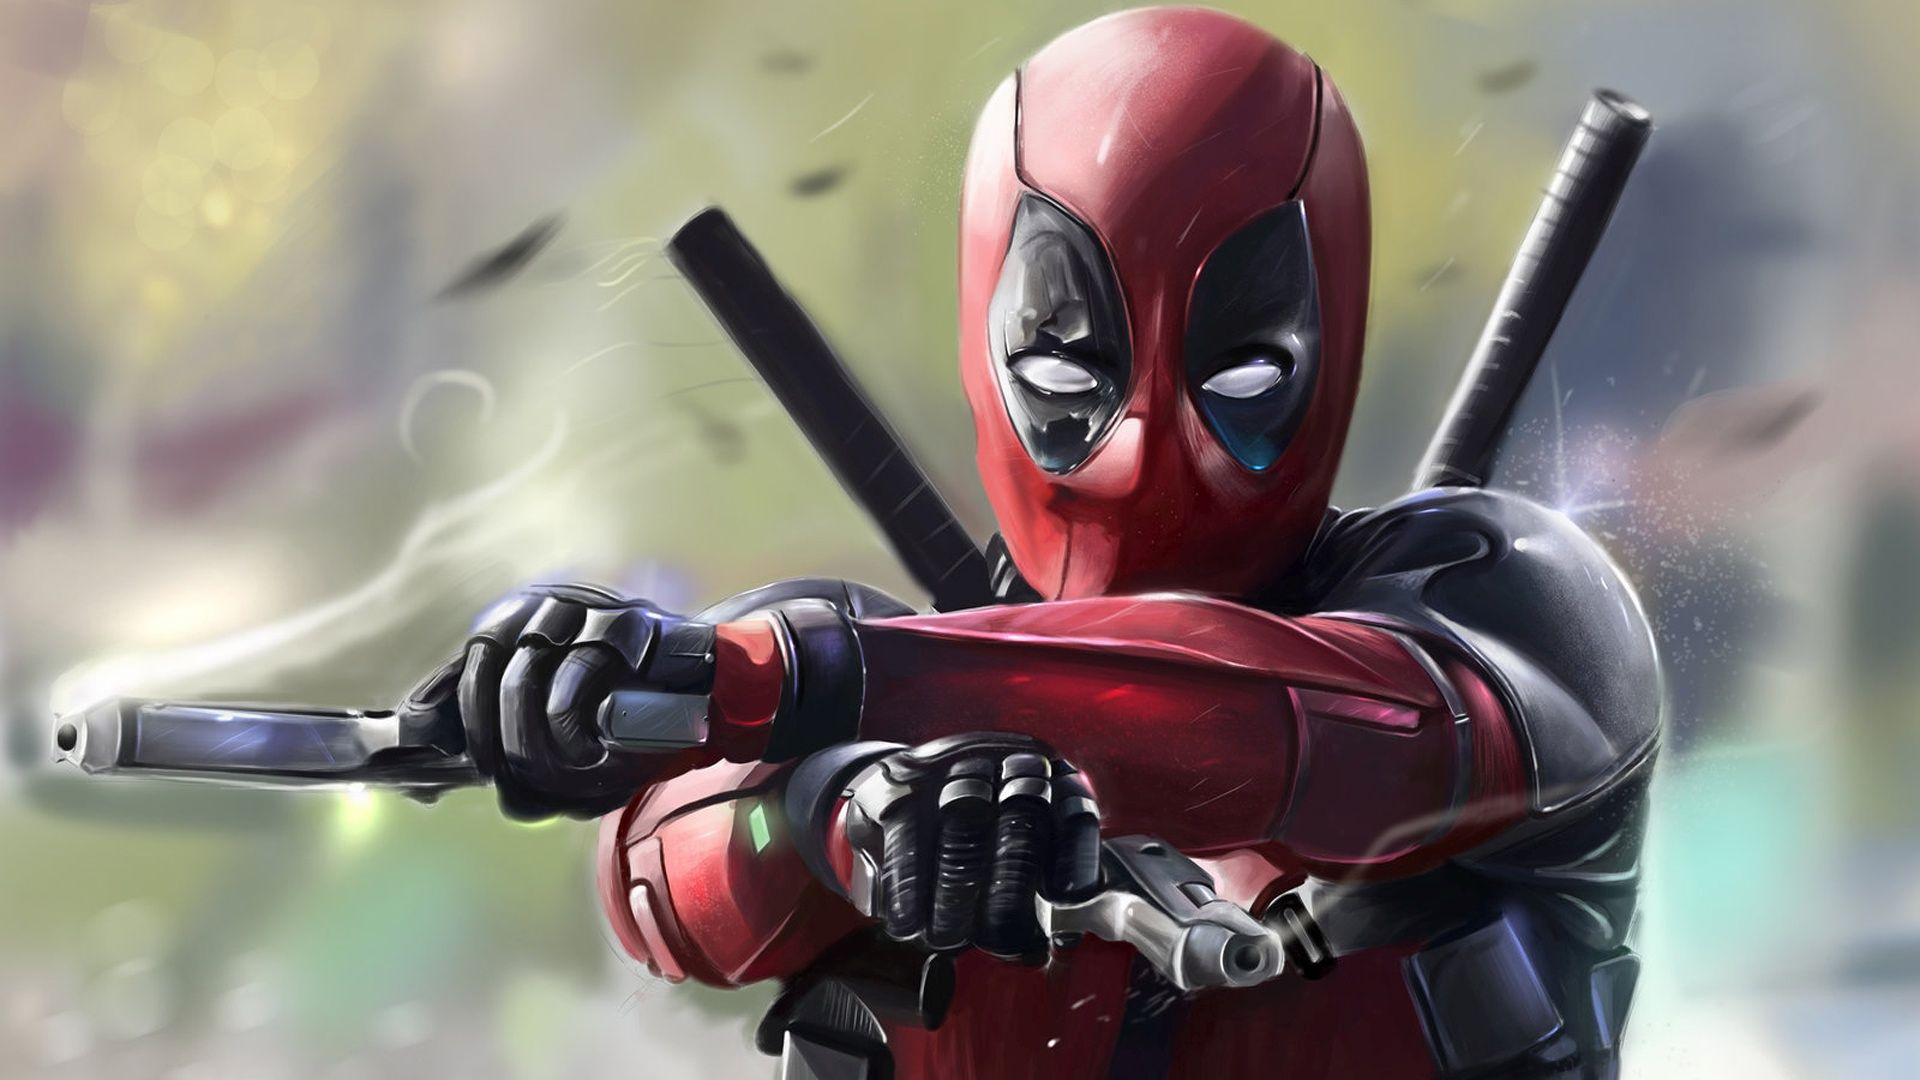 6 Deadpool Vs Wolverine HD Wallpapers | Backgrounds - Wallpaper Abyss